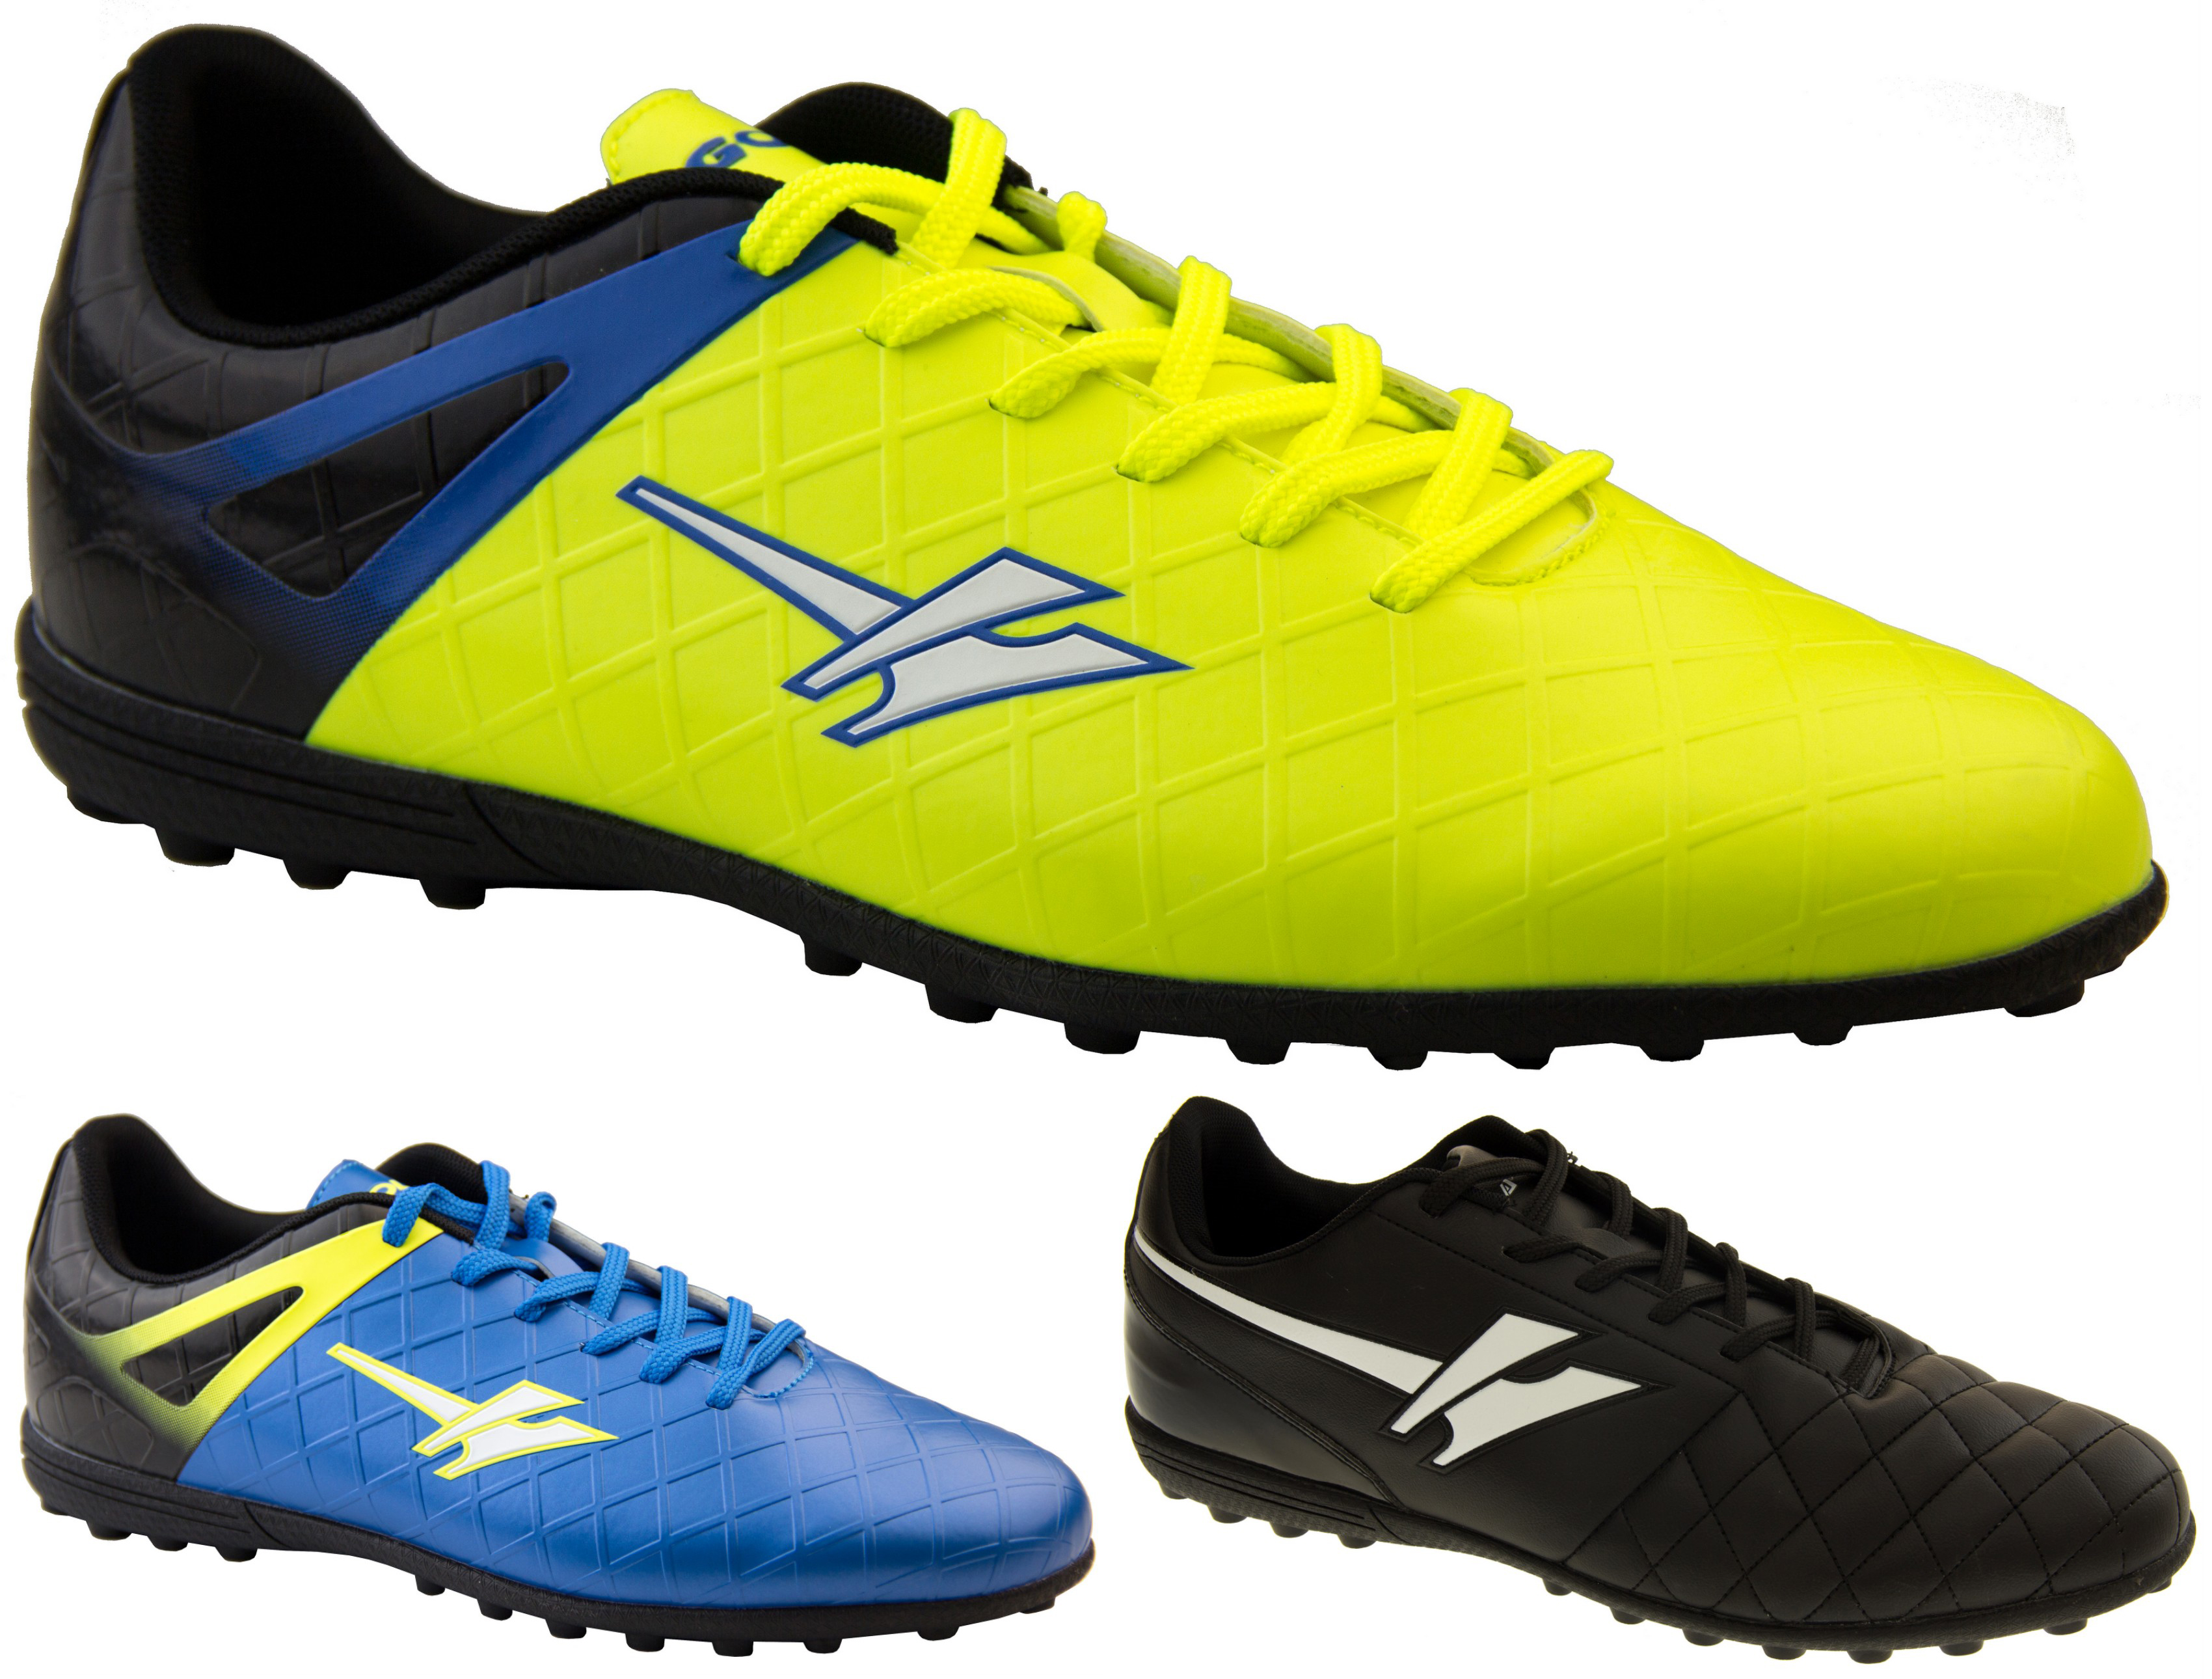 mens gola astroturf football boots shoes astro